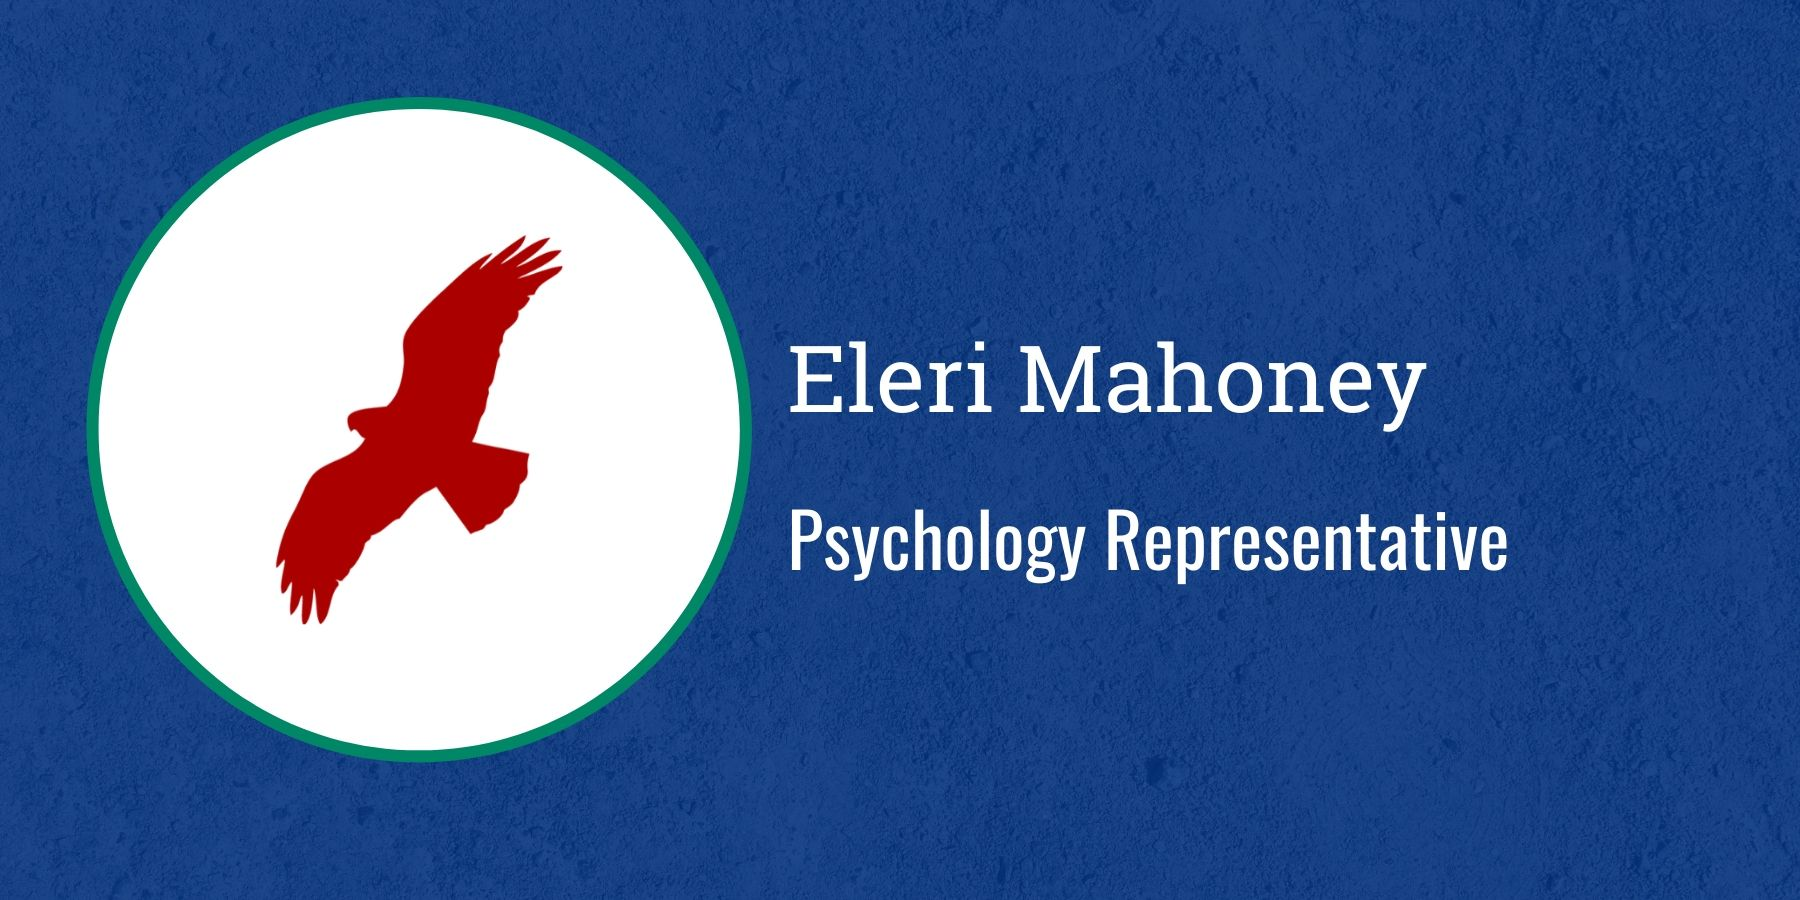 Image of Redhawk and text Psychology Representative